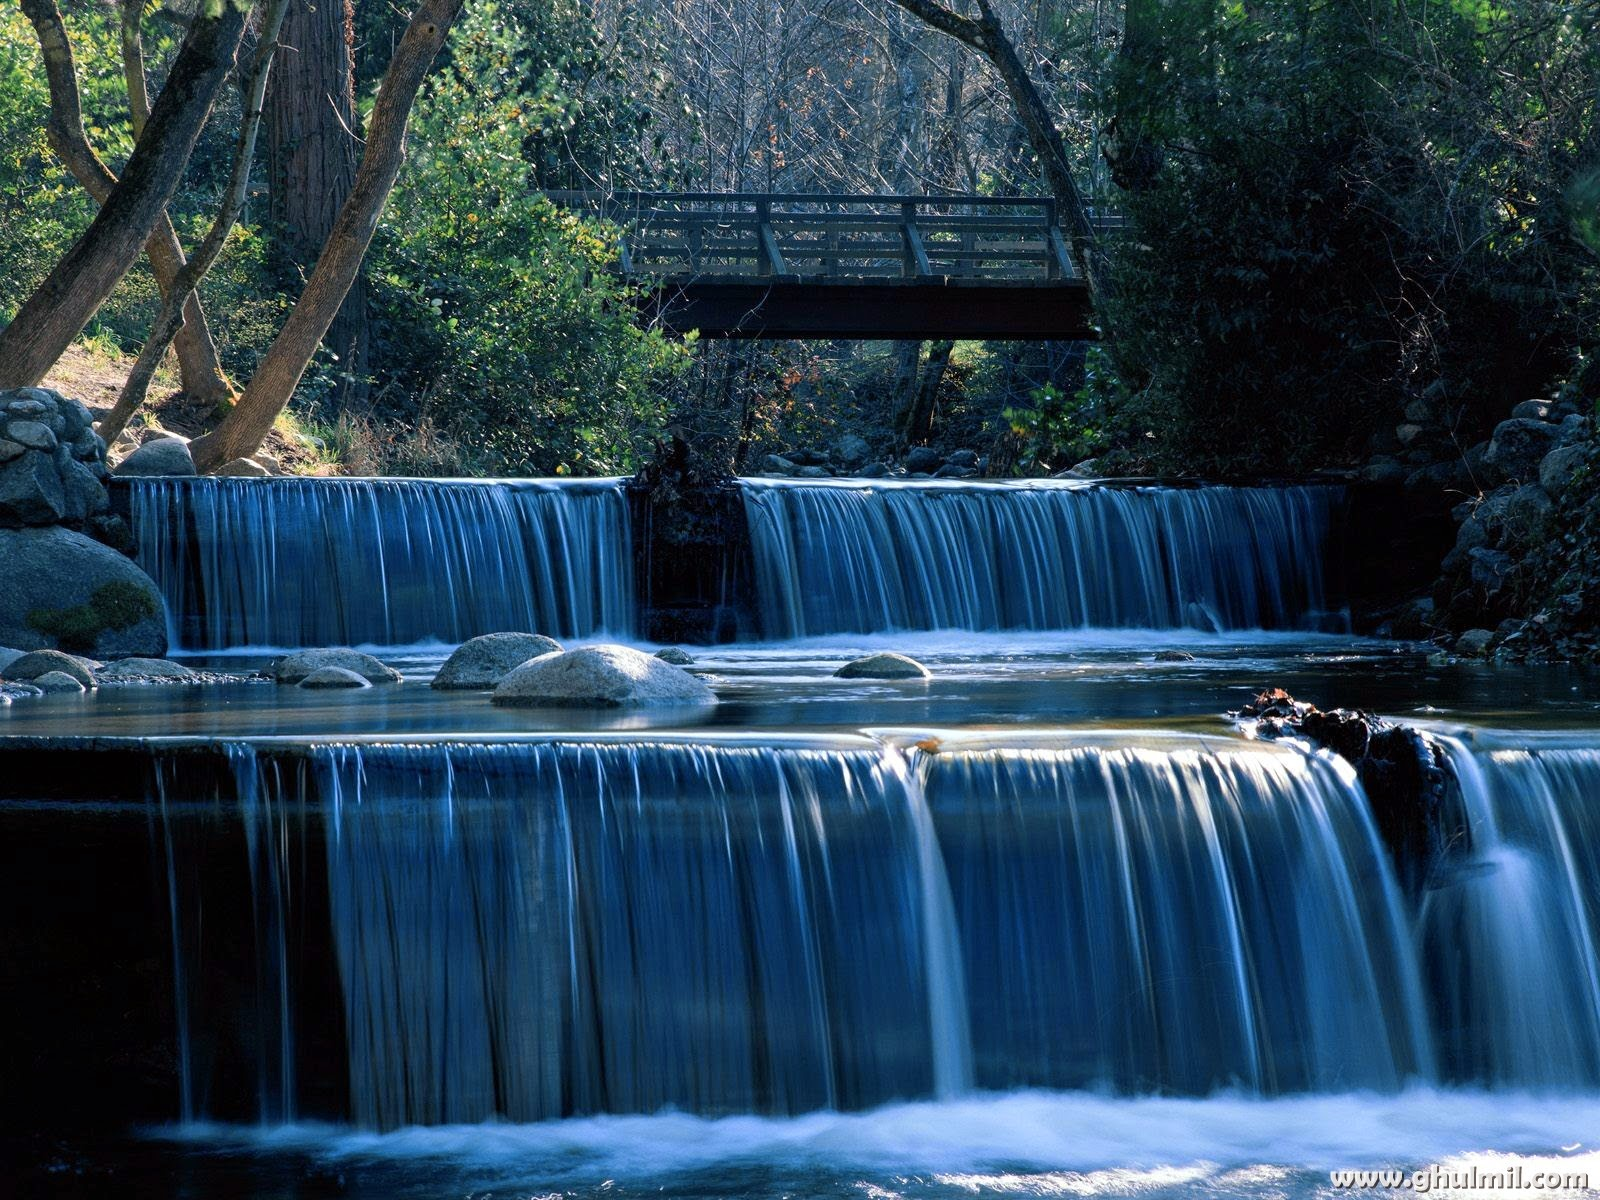 Hd Pictures Nature Wallpapers Hd Beautiful Waterfall Waterfalls Hd Cool 7 Hd Nature Wallpapers